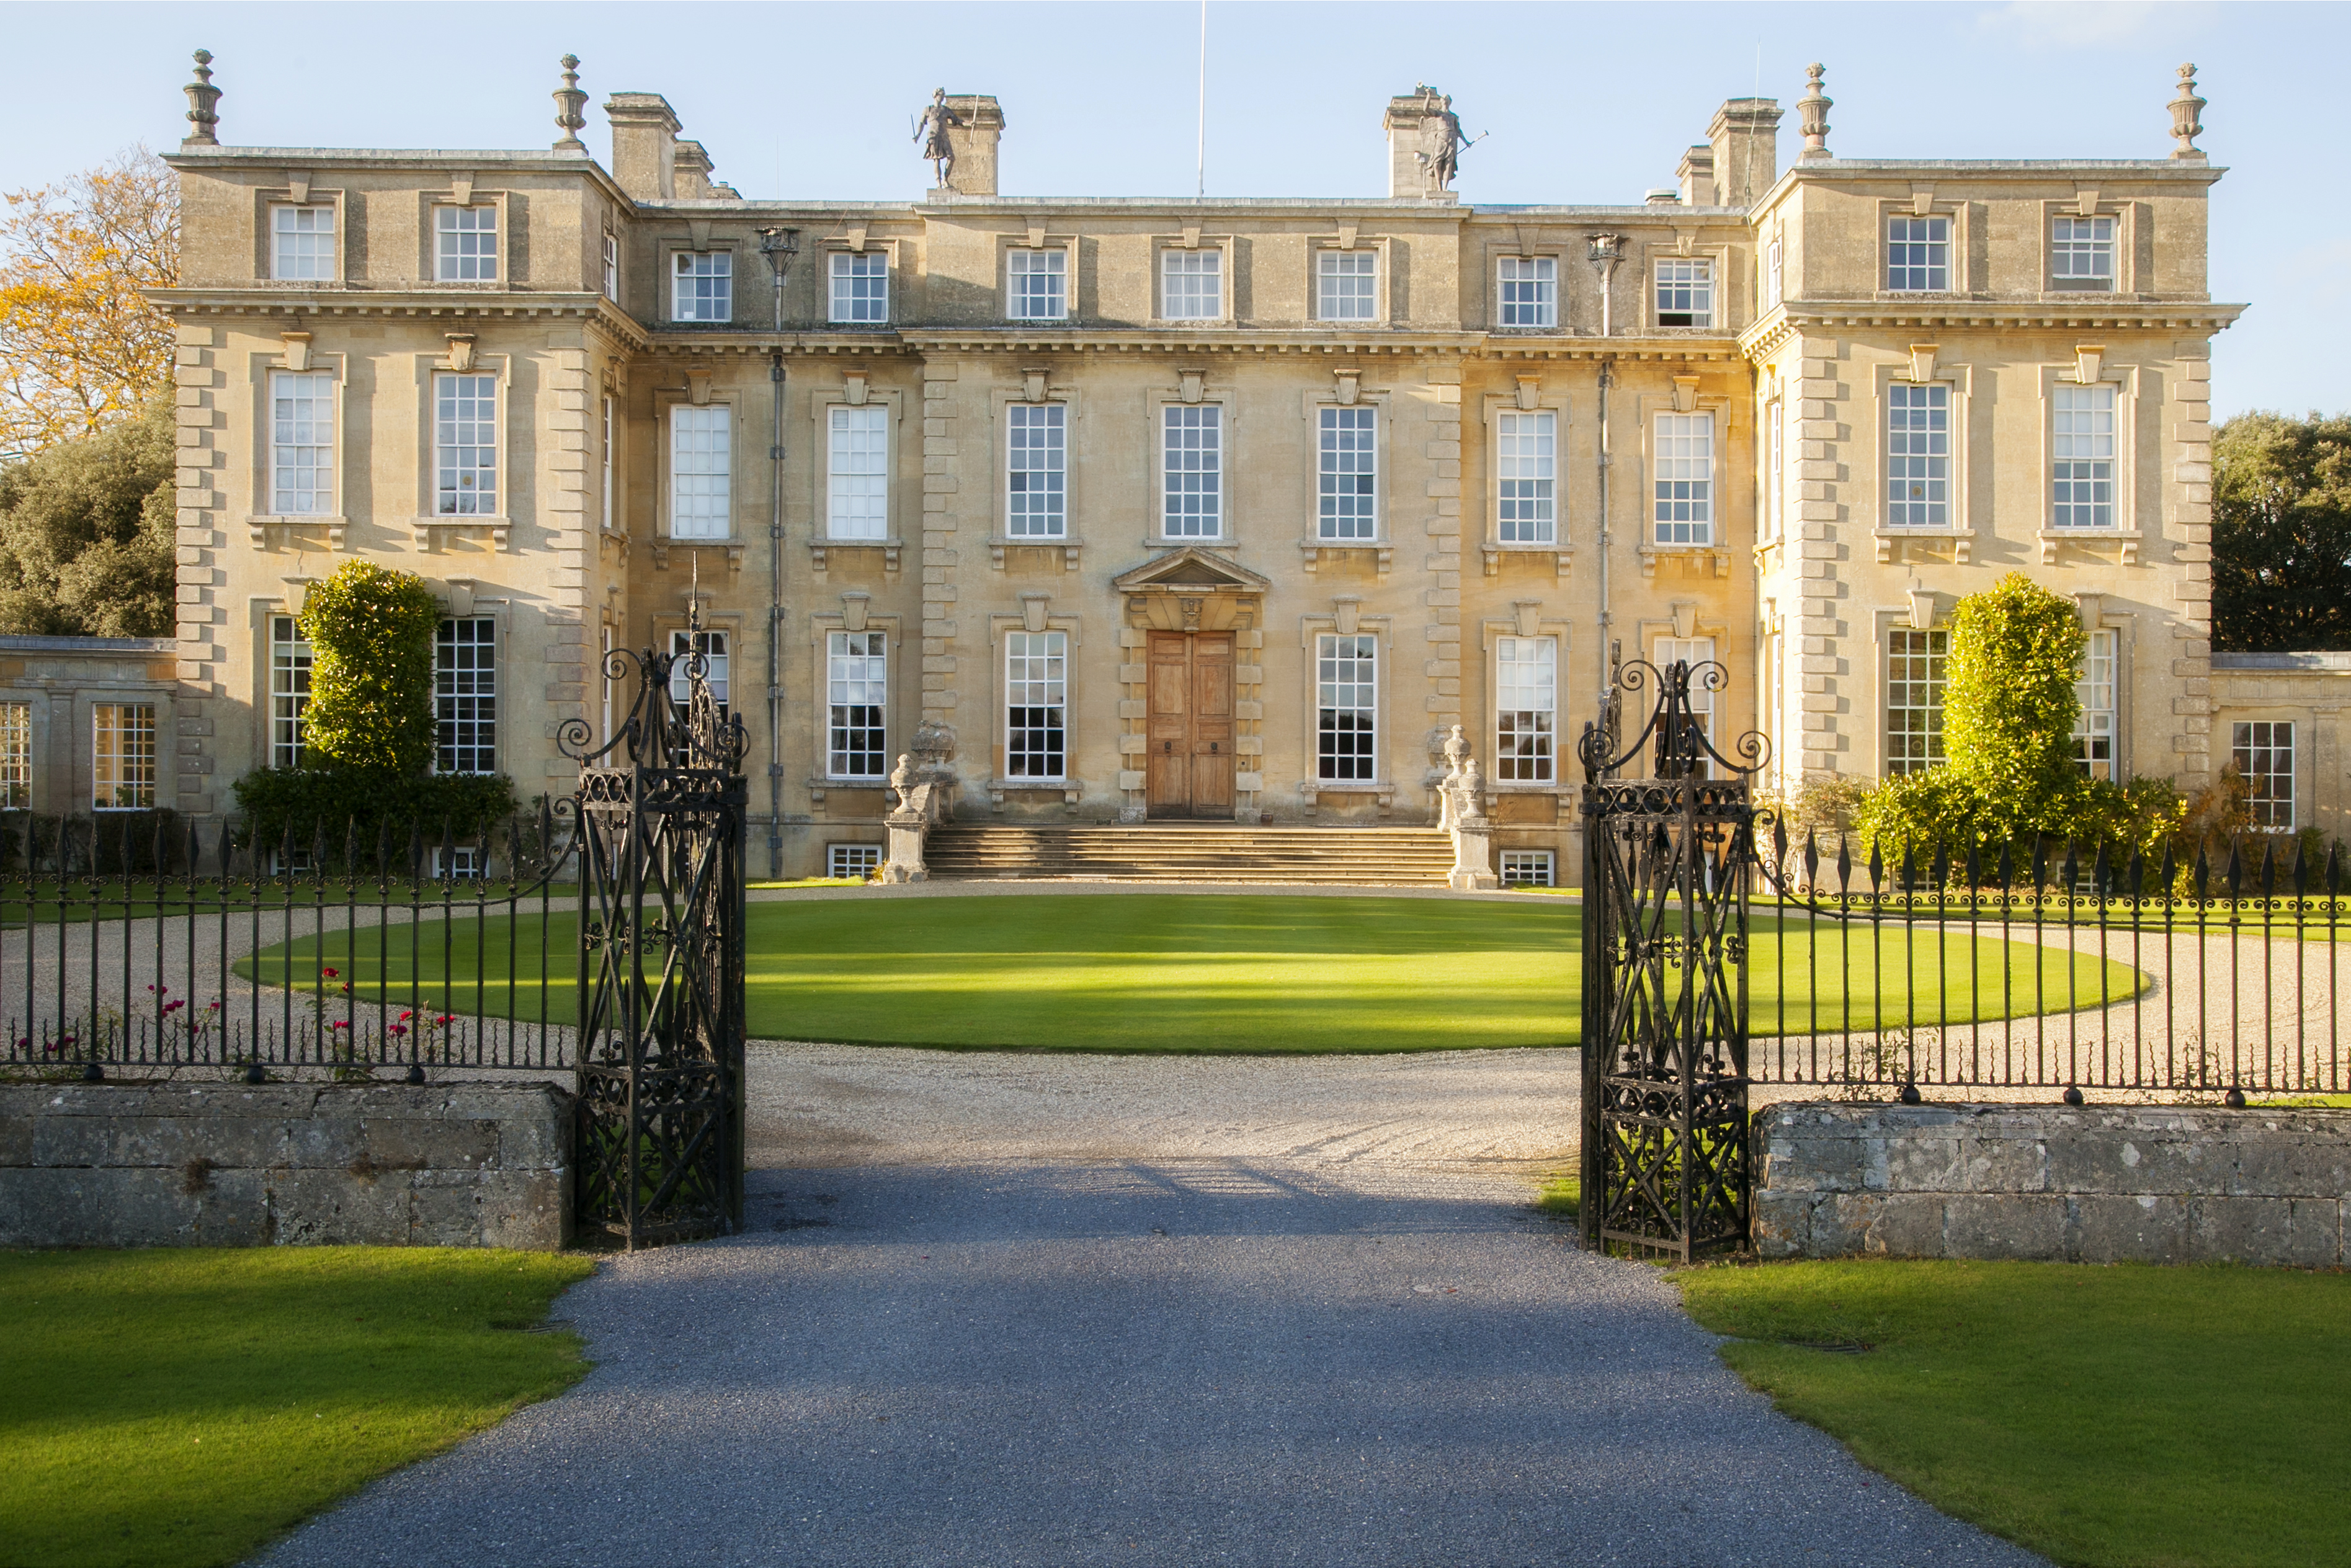 Ditchley Park, the mansion